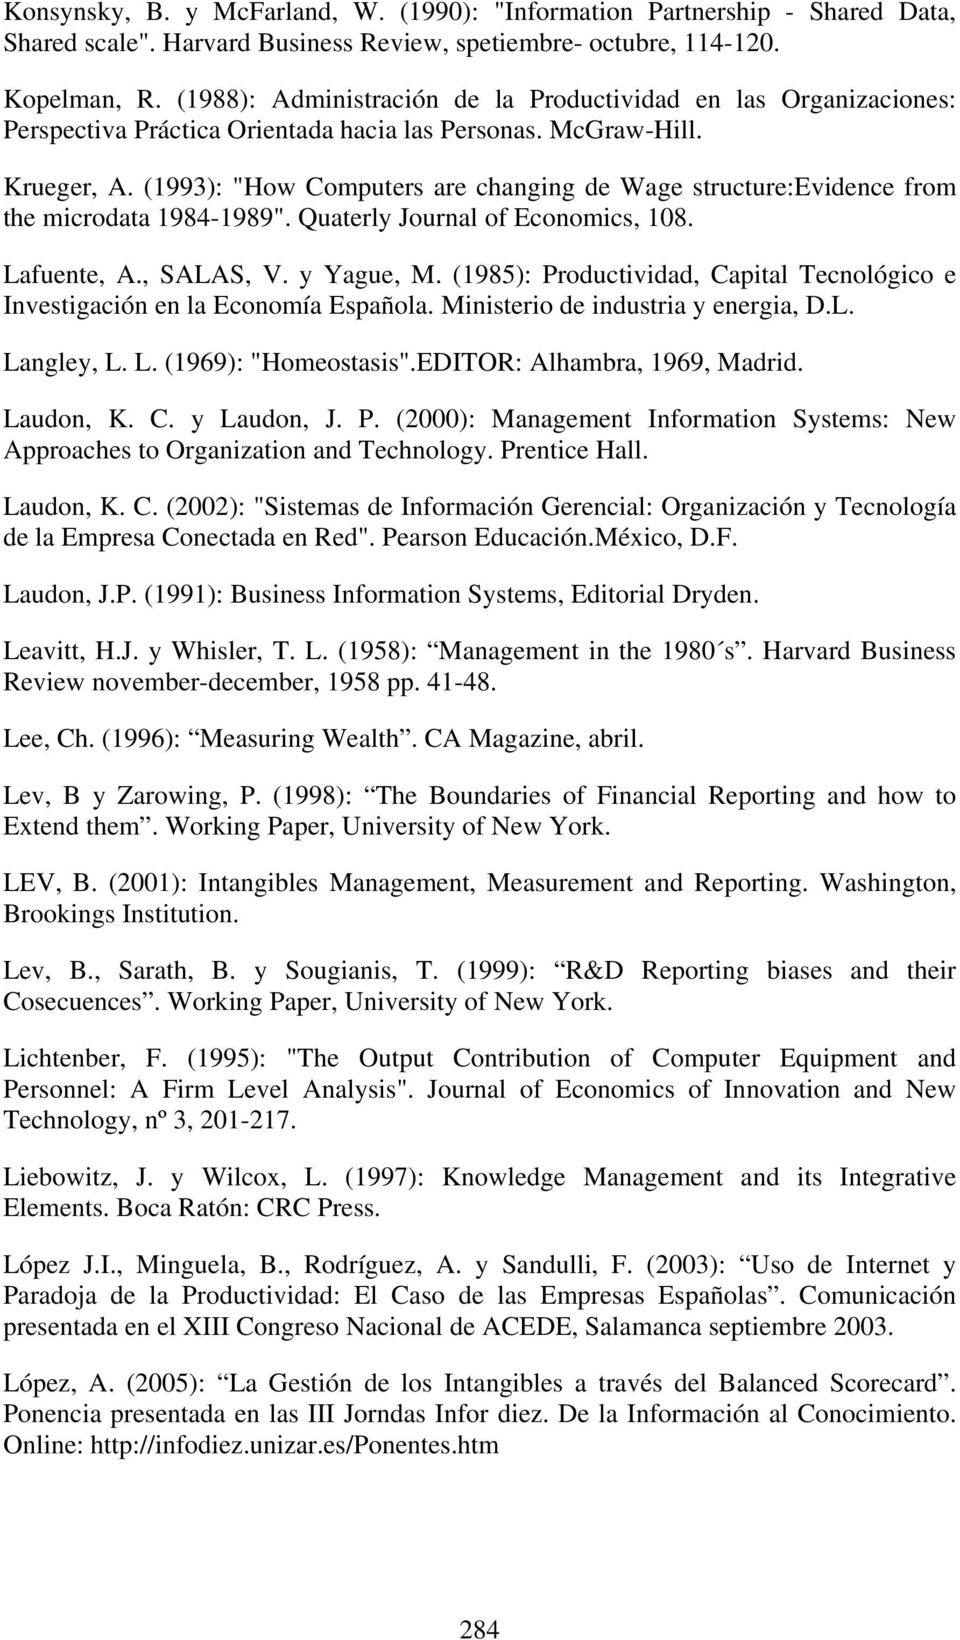 "(1993): ""How Computers are changing de Wage structure:evidence from the microdata 1984-1989"". Quaterly Journal of Economics, 108. Lafuente, A., SALAS, V. y Yague, M."